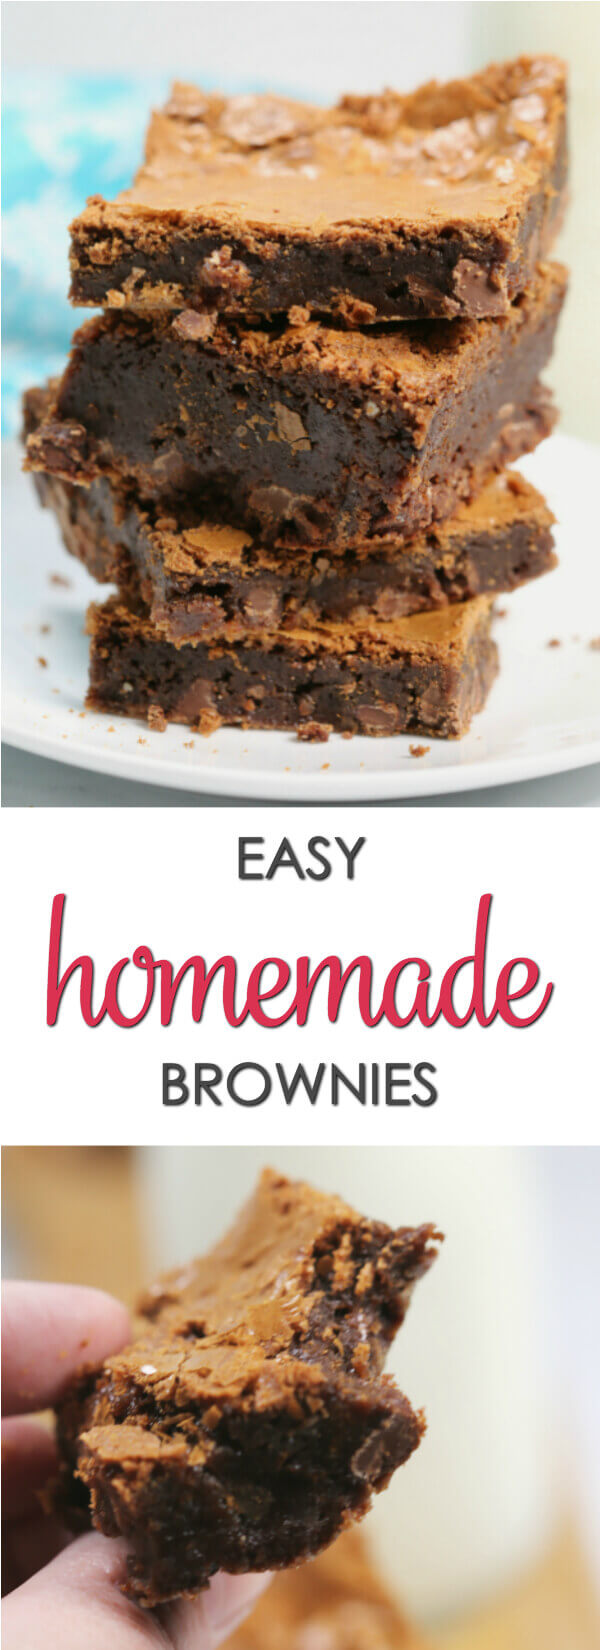 My grandmother's Homemade Brownies scratch recipe is one of my most treasured recipes.  Her brownies were soft and chewy and oozing with chocolate flavor.